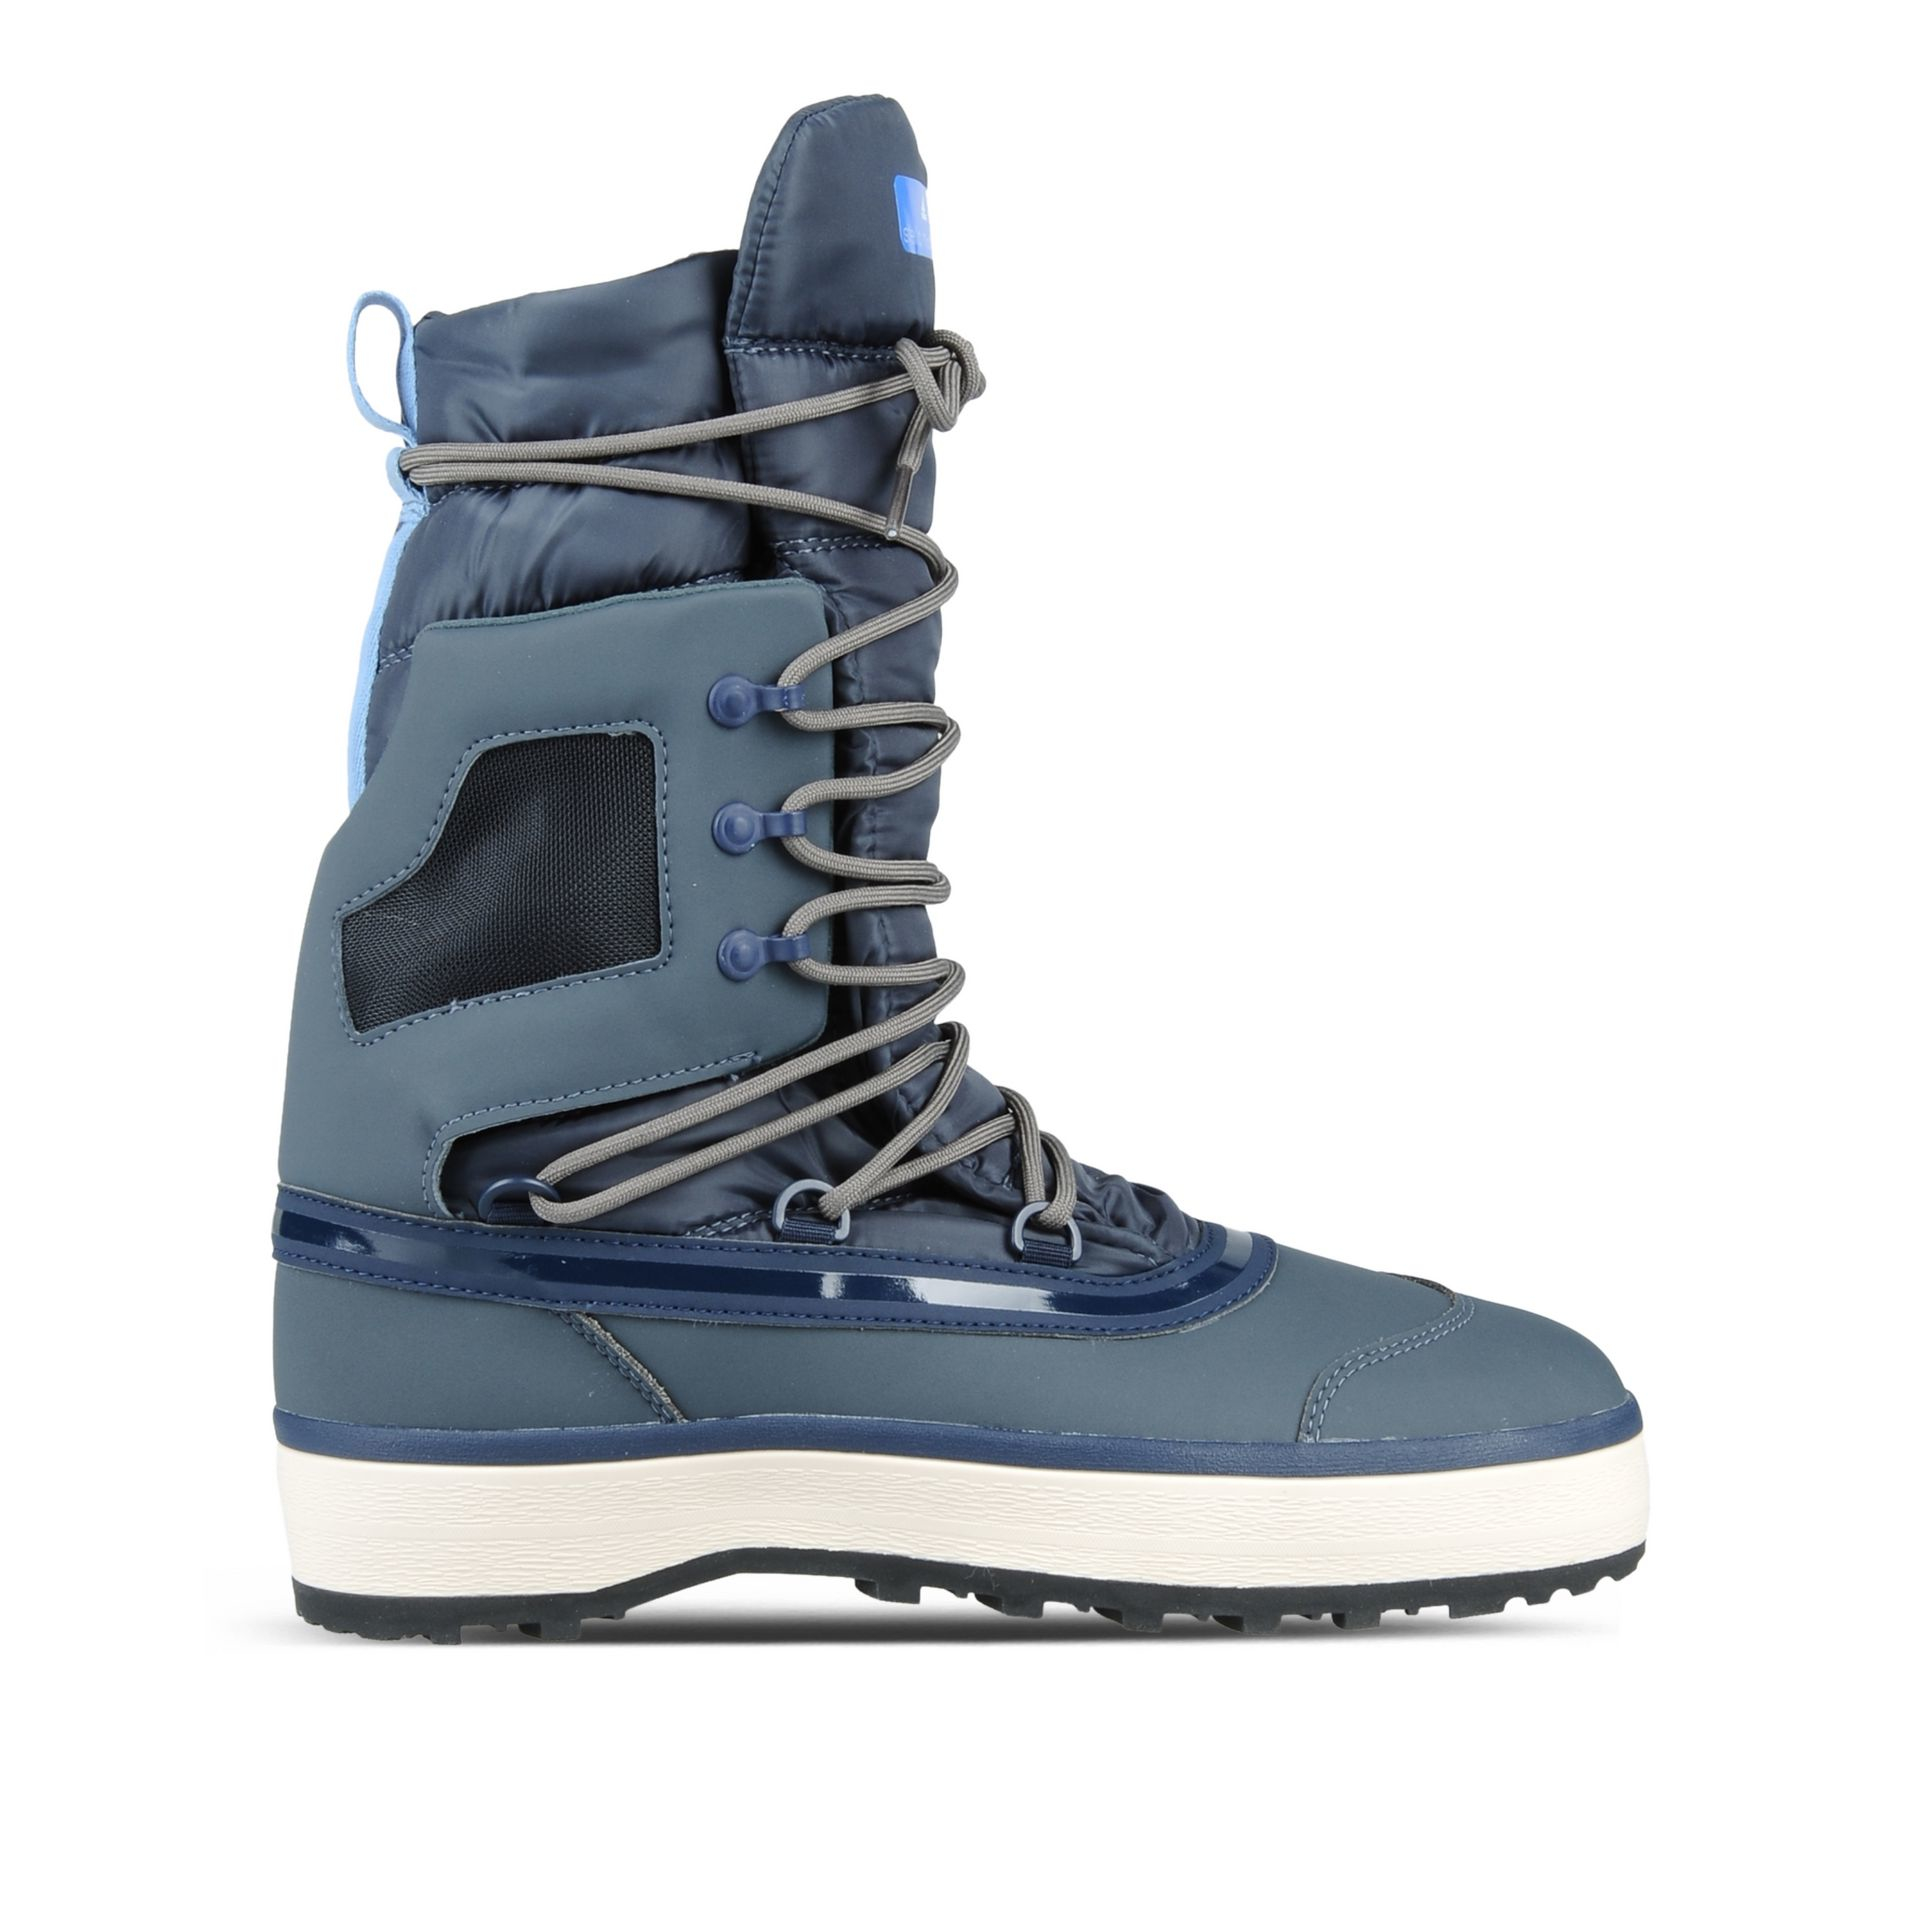 7290659a715 Lyst - adidas By Stella McCartney Winter Boots in Blue